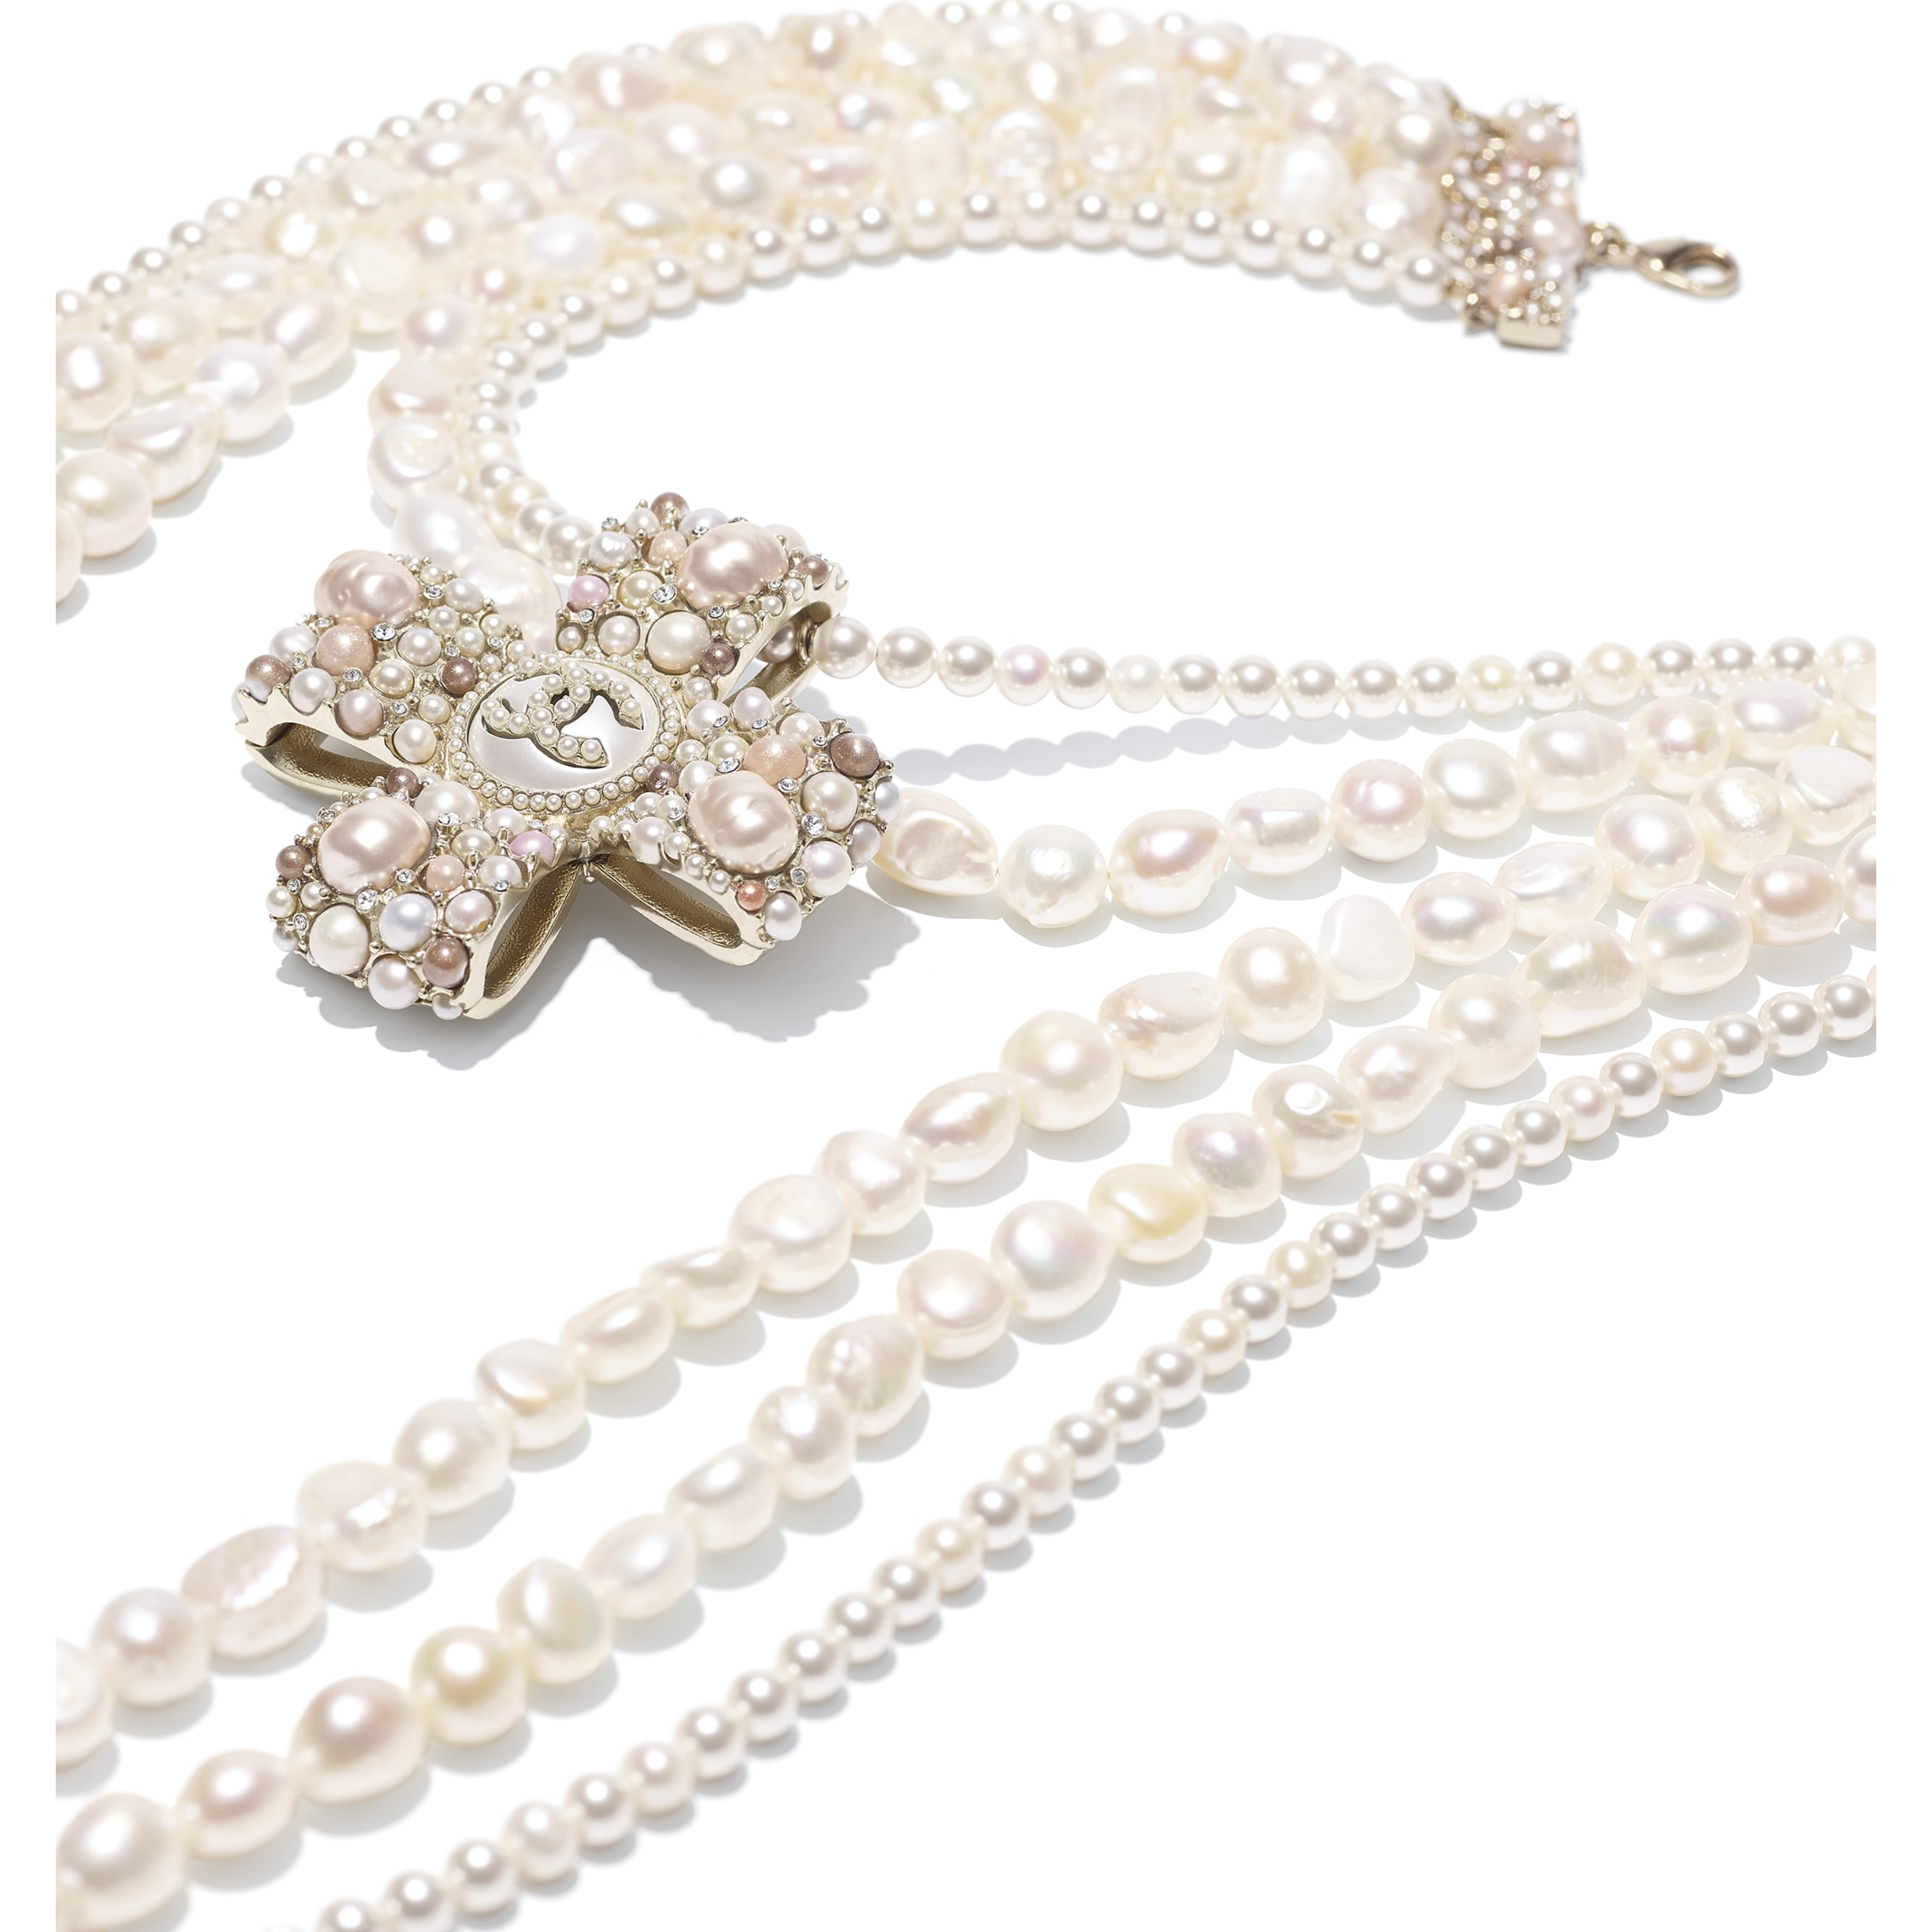 Necklace - Gold, Pearly White, Pink & Crystal - Metal, Cultured Fresh Water Pearls, Glass Pearls, Imitation Pearls & Diamanté - CHANEL - Alternative view - see standard sized version